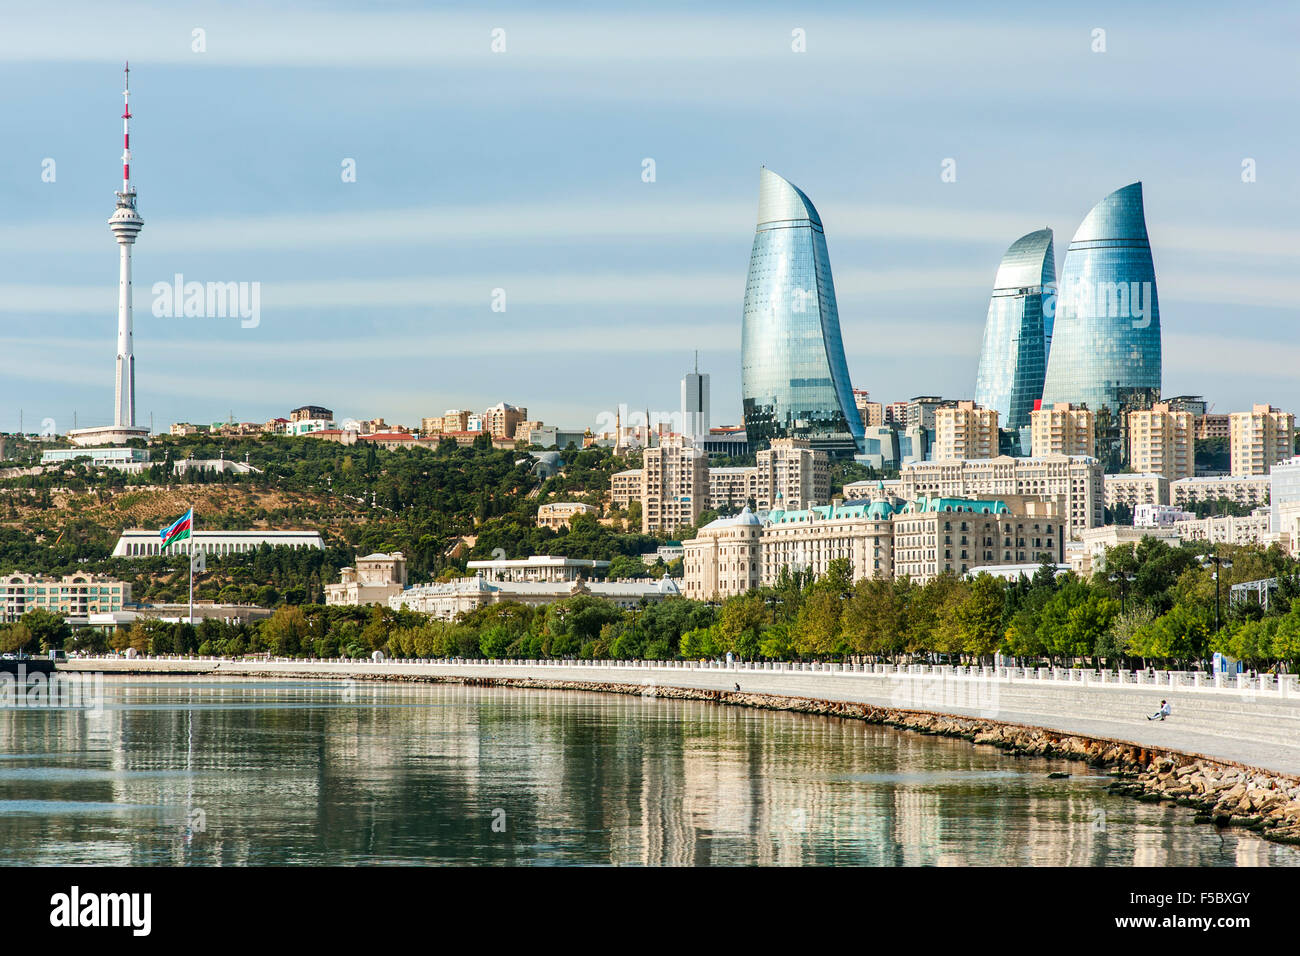 Baku Bay and the Baku skyline and promenade. - Stock Image